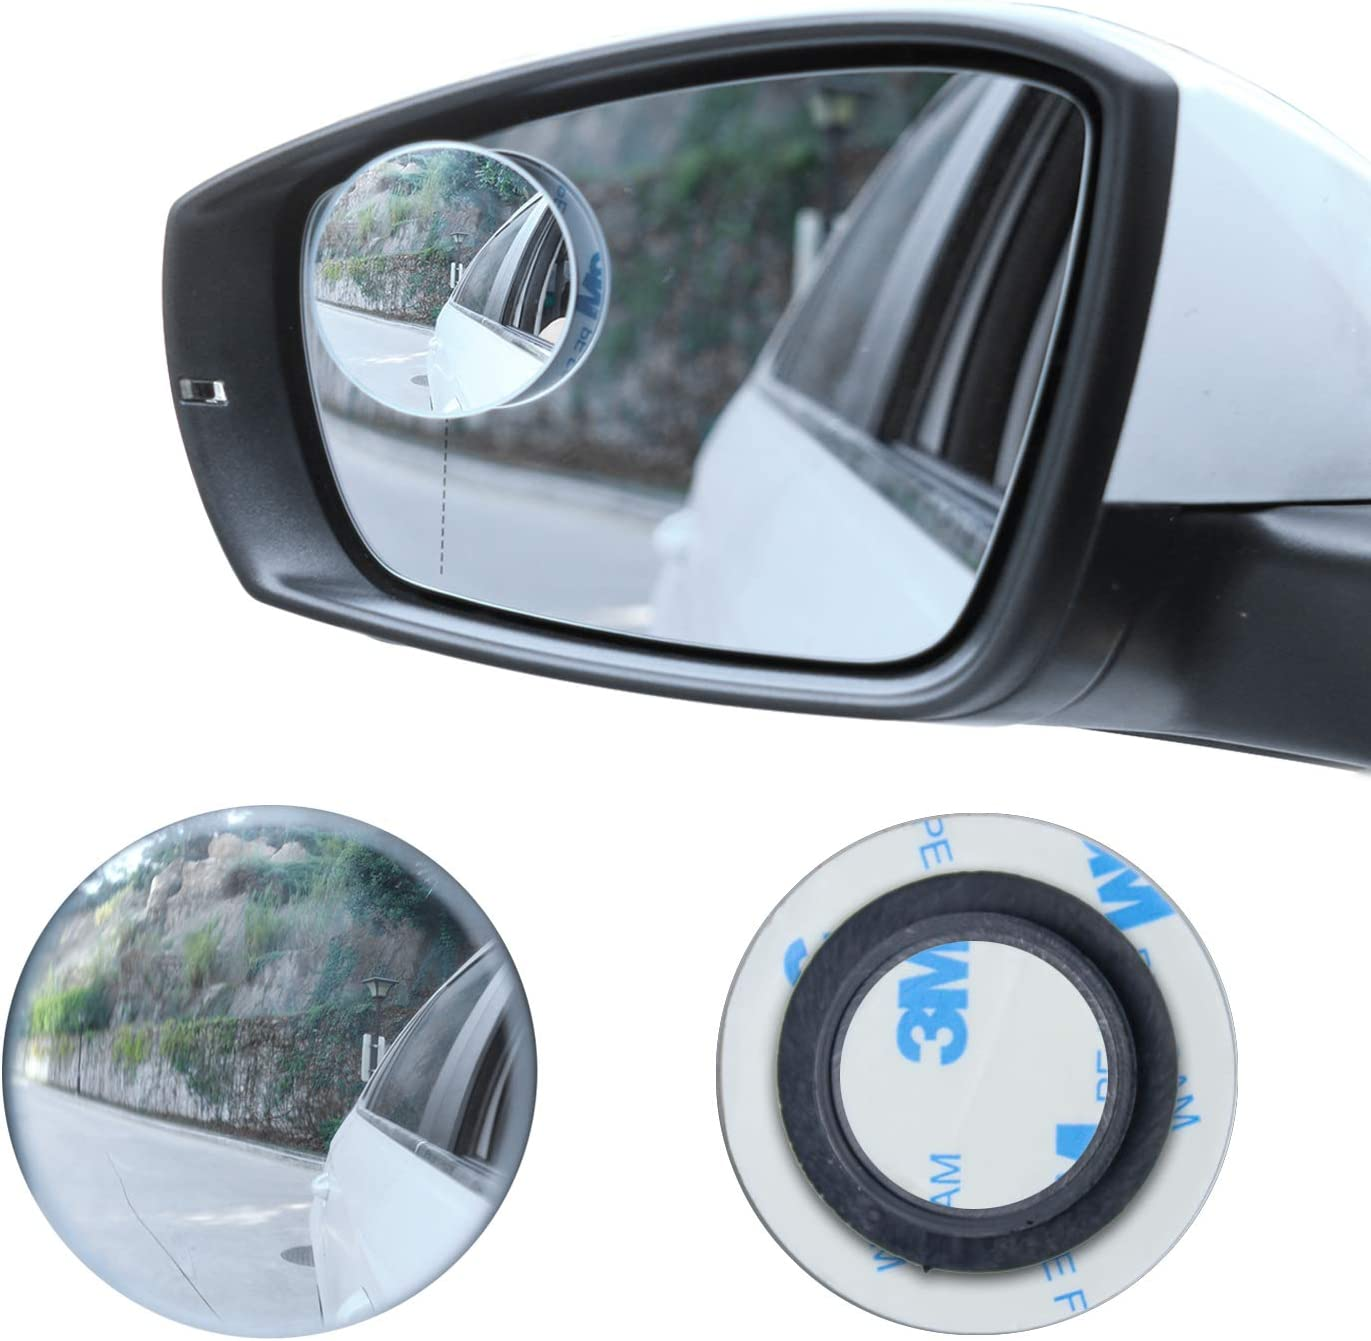 Stick On Interior Rearview Mirror /& Blind Spots For Citroen